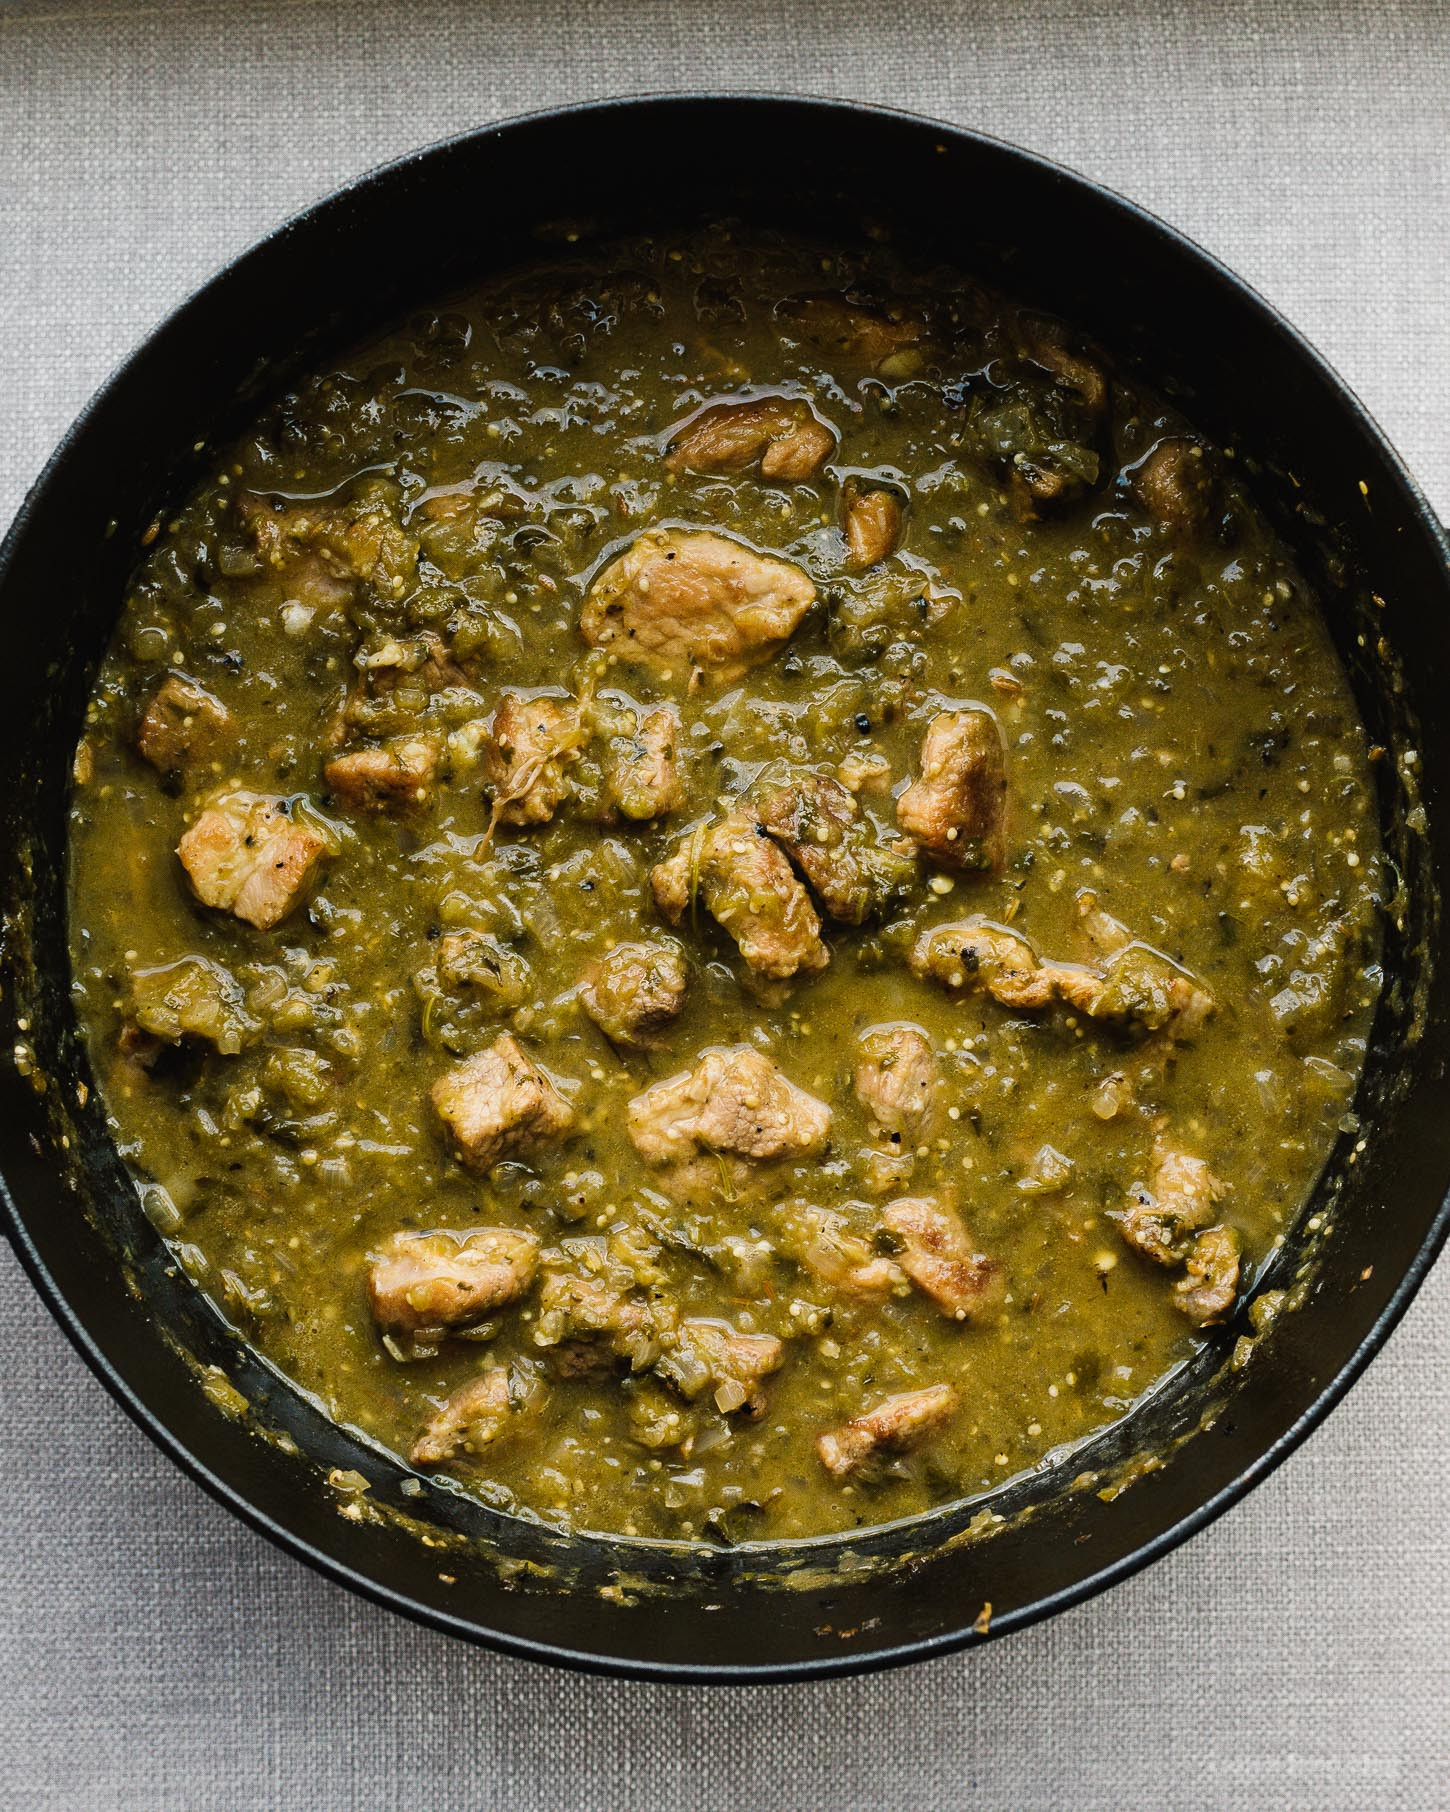 Green Chili Pork  This Easy Slow Cooker New Mexico & Colorado Hatch Chile